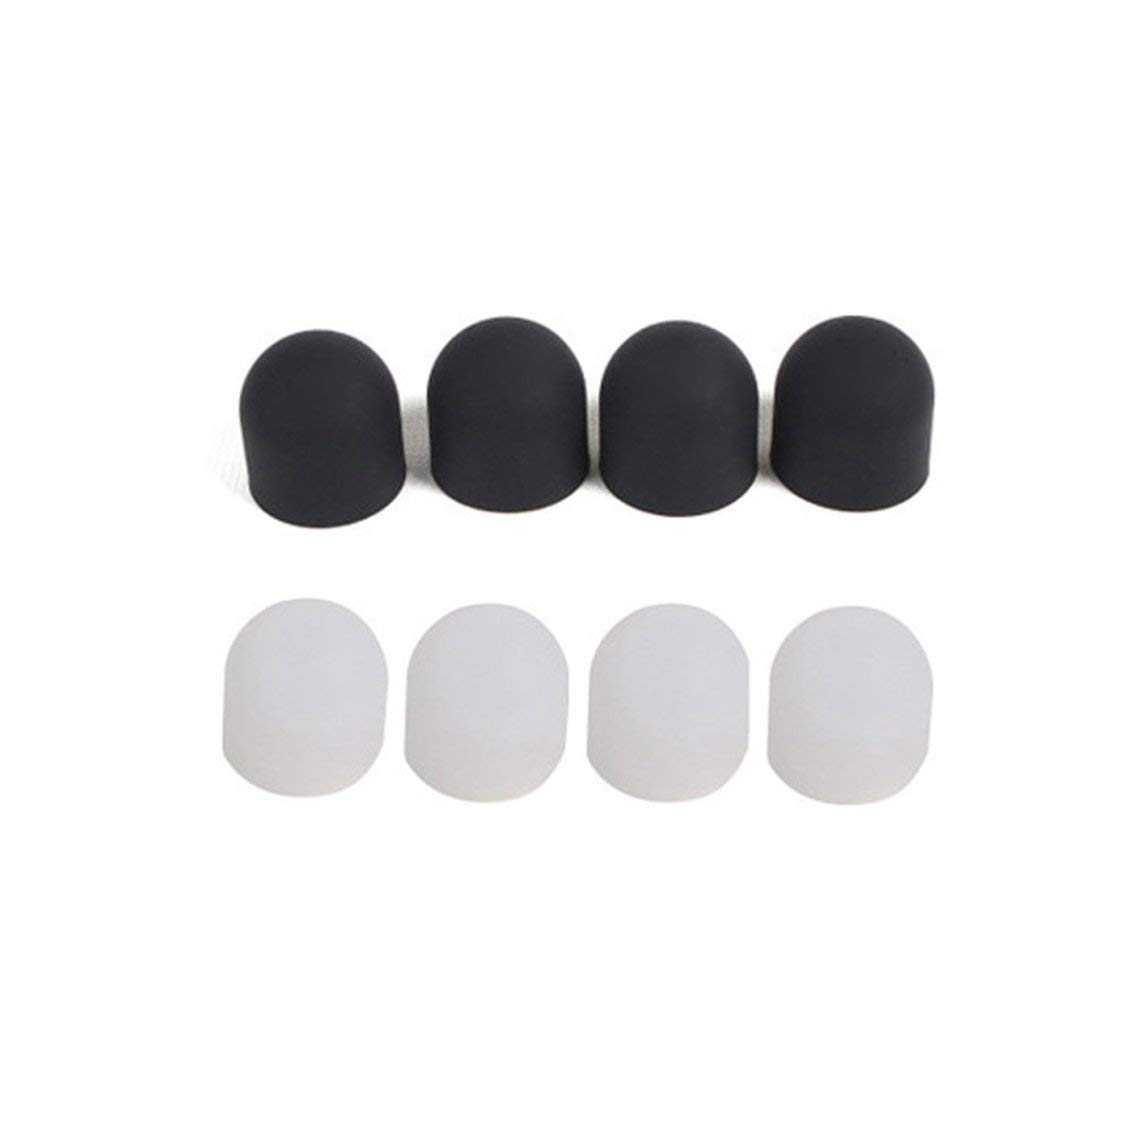 Zoom Drone Accessoires Zinniaya 4 Pcs Motor Cover Case Dustproof Silicone Plug Cover Protector pour DJI Mavic 2 Pro